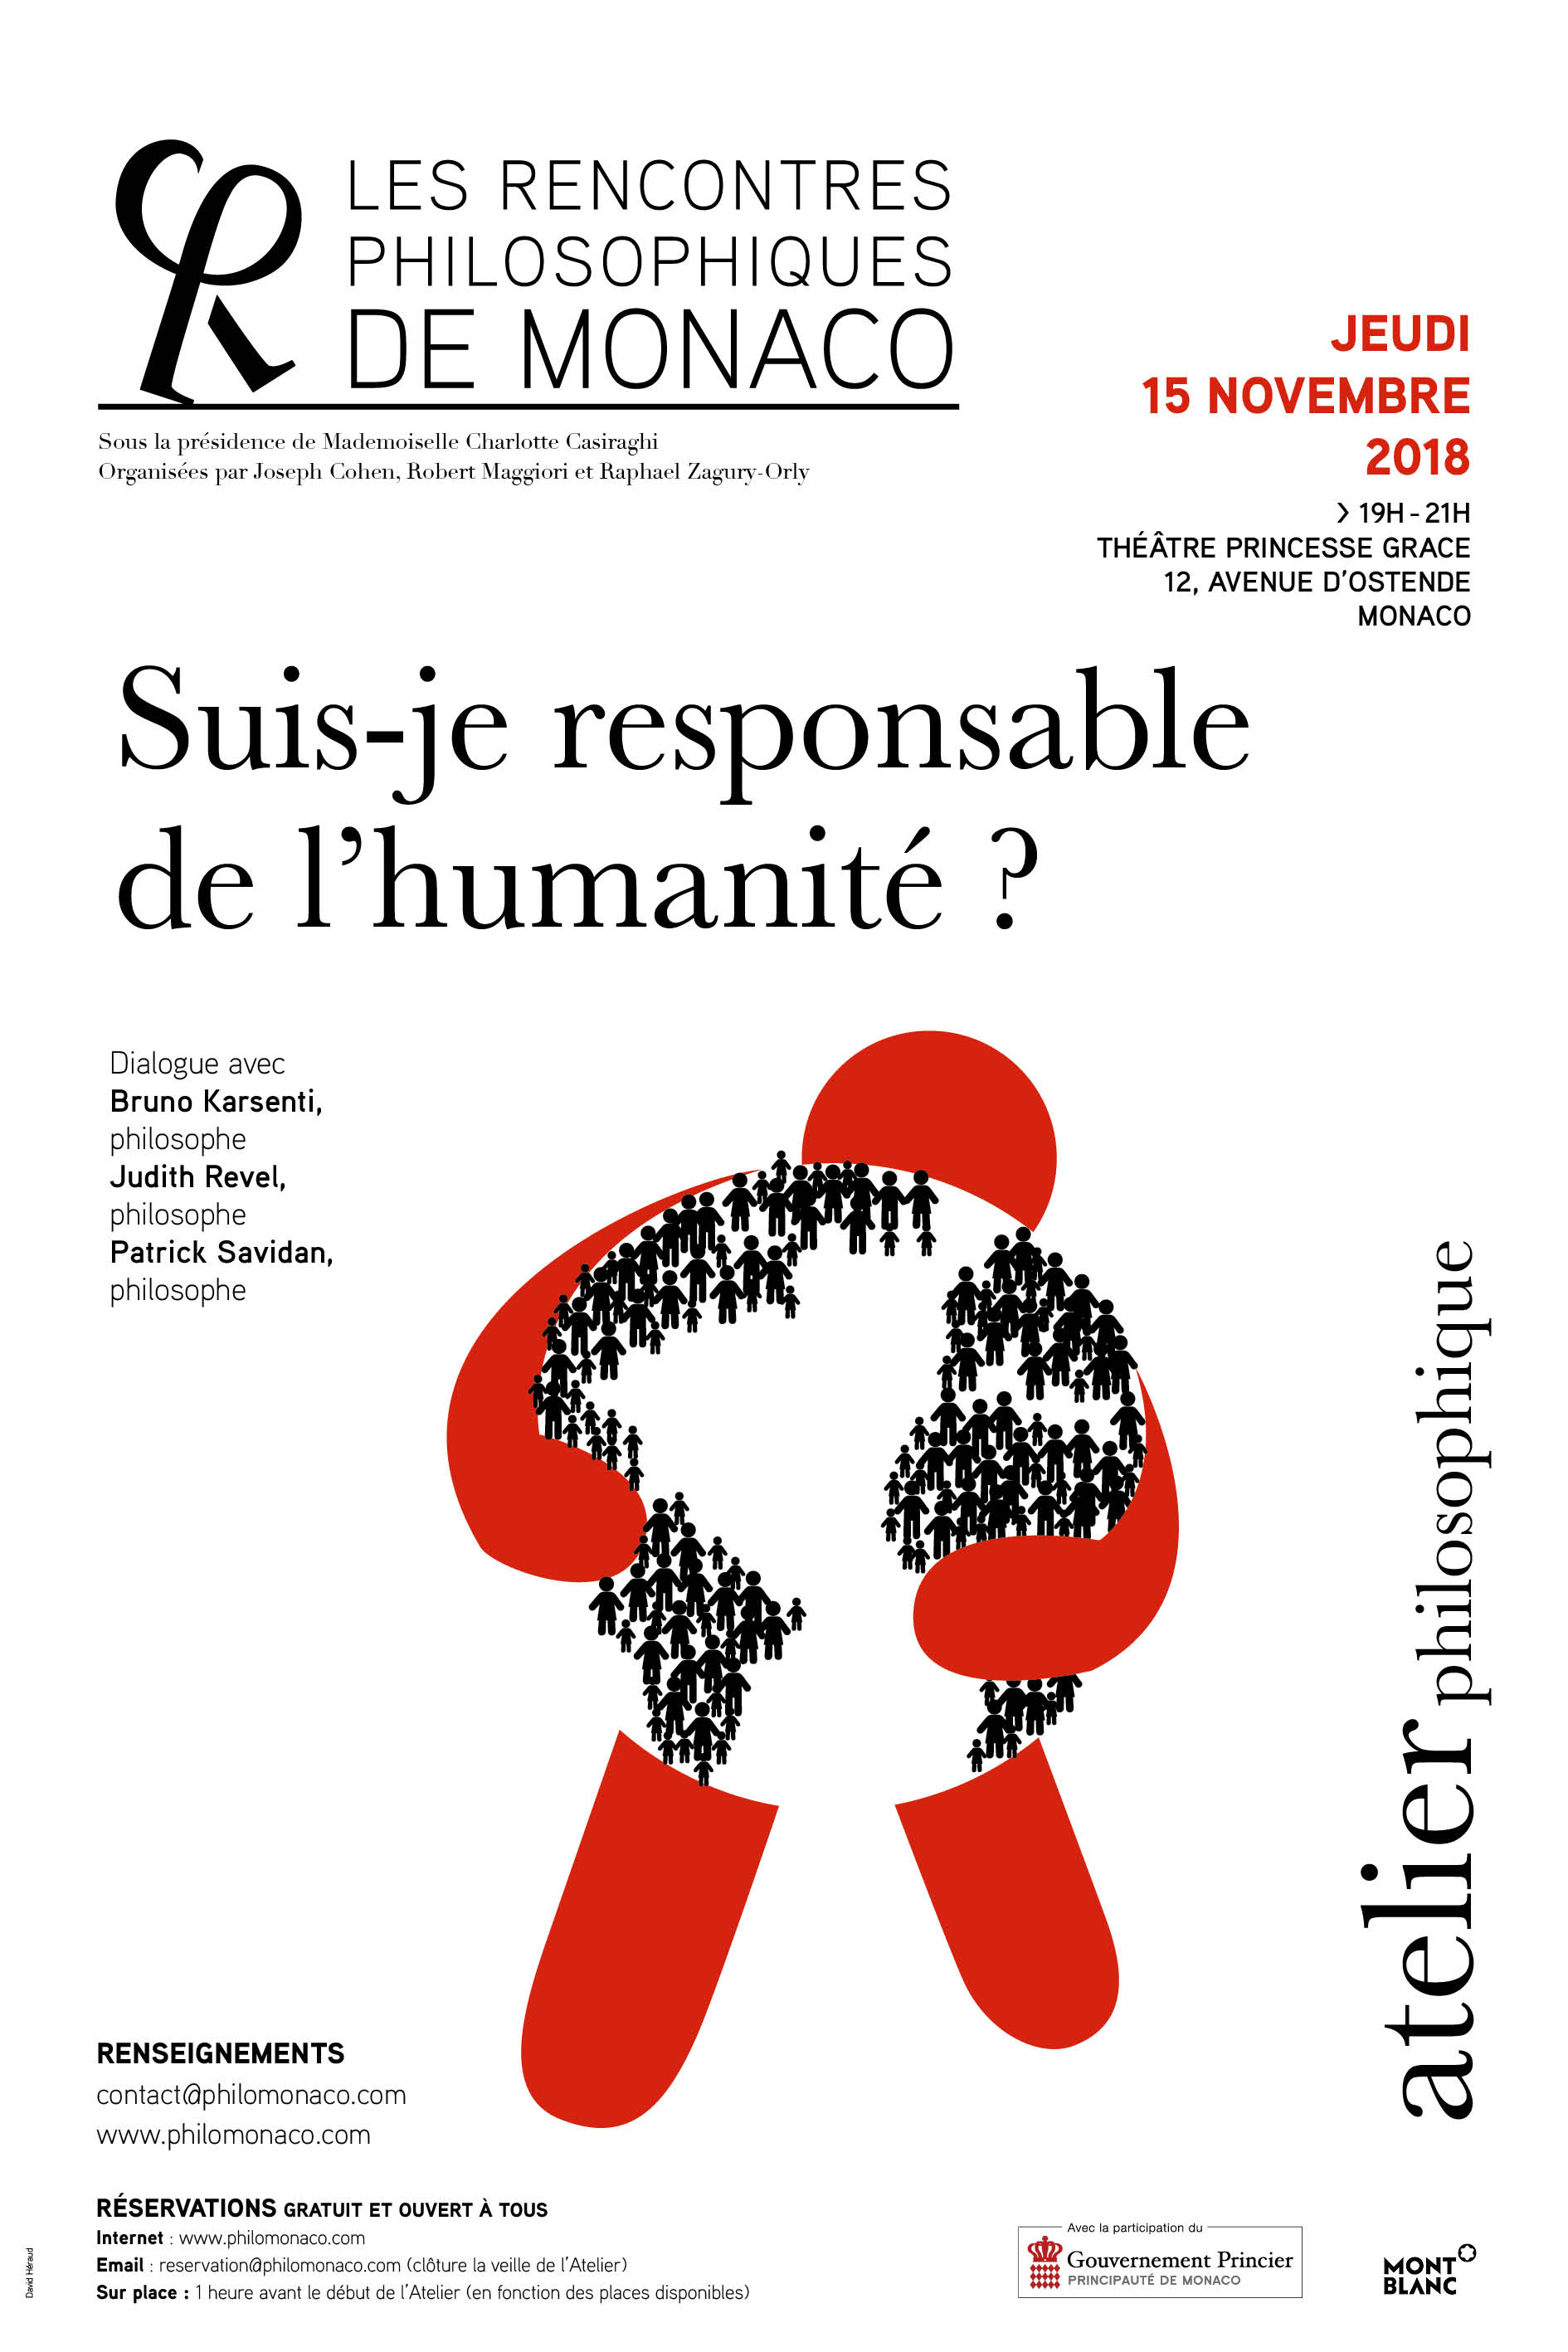 4914, 4914, Suis je responsable, suis-je-responsable.jpg, 373968, http://philomonaco.com/wp-content/uploads/2018/09/suis-je-responsable.jpg, http://philomonaco.com/atelier/suis-je-responsable-de-lhumanite/suis-je-responsable/, , 2, , , suis-je-responsable, inherit, 4841, 2018-09-12 07:51:28, 2018-09-12 07:52:44, 0, image/jpeg, image, jpeg, http://philomonaco.com/wp-includes/images/media/default.png, 1890, 2835, Array